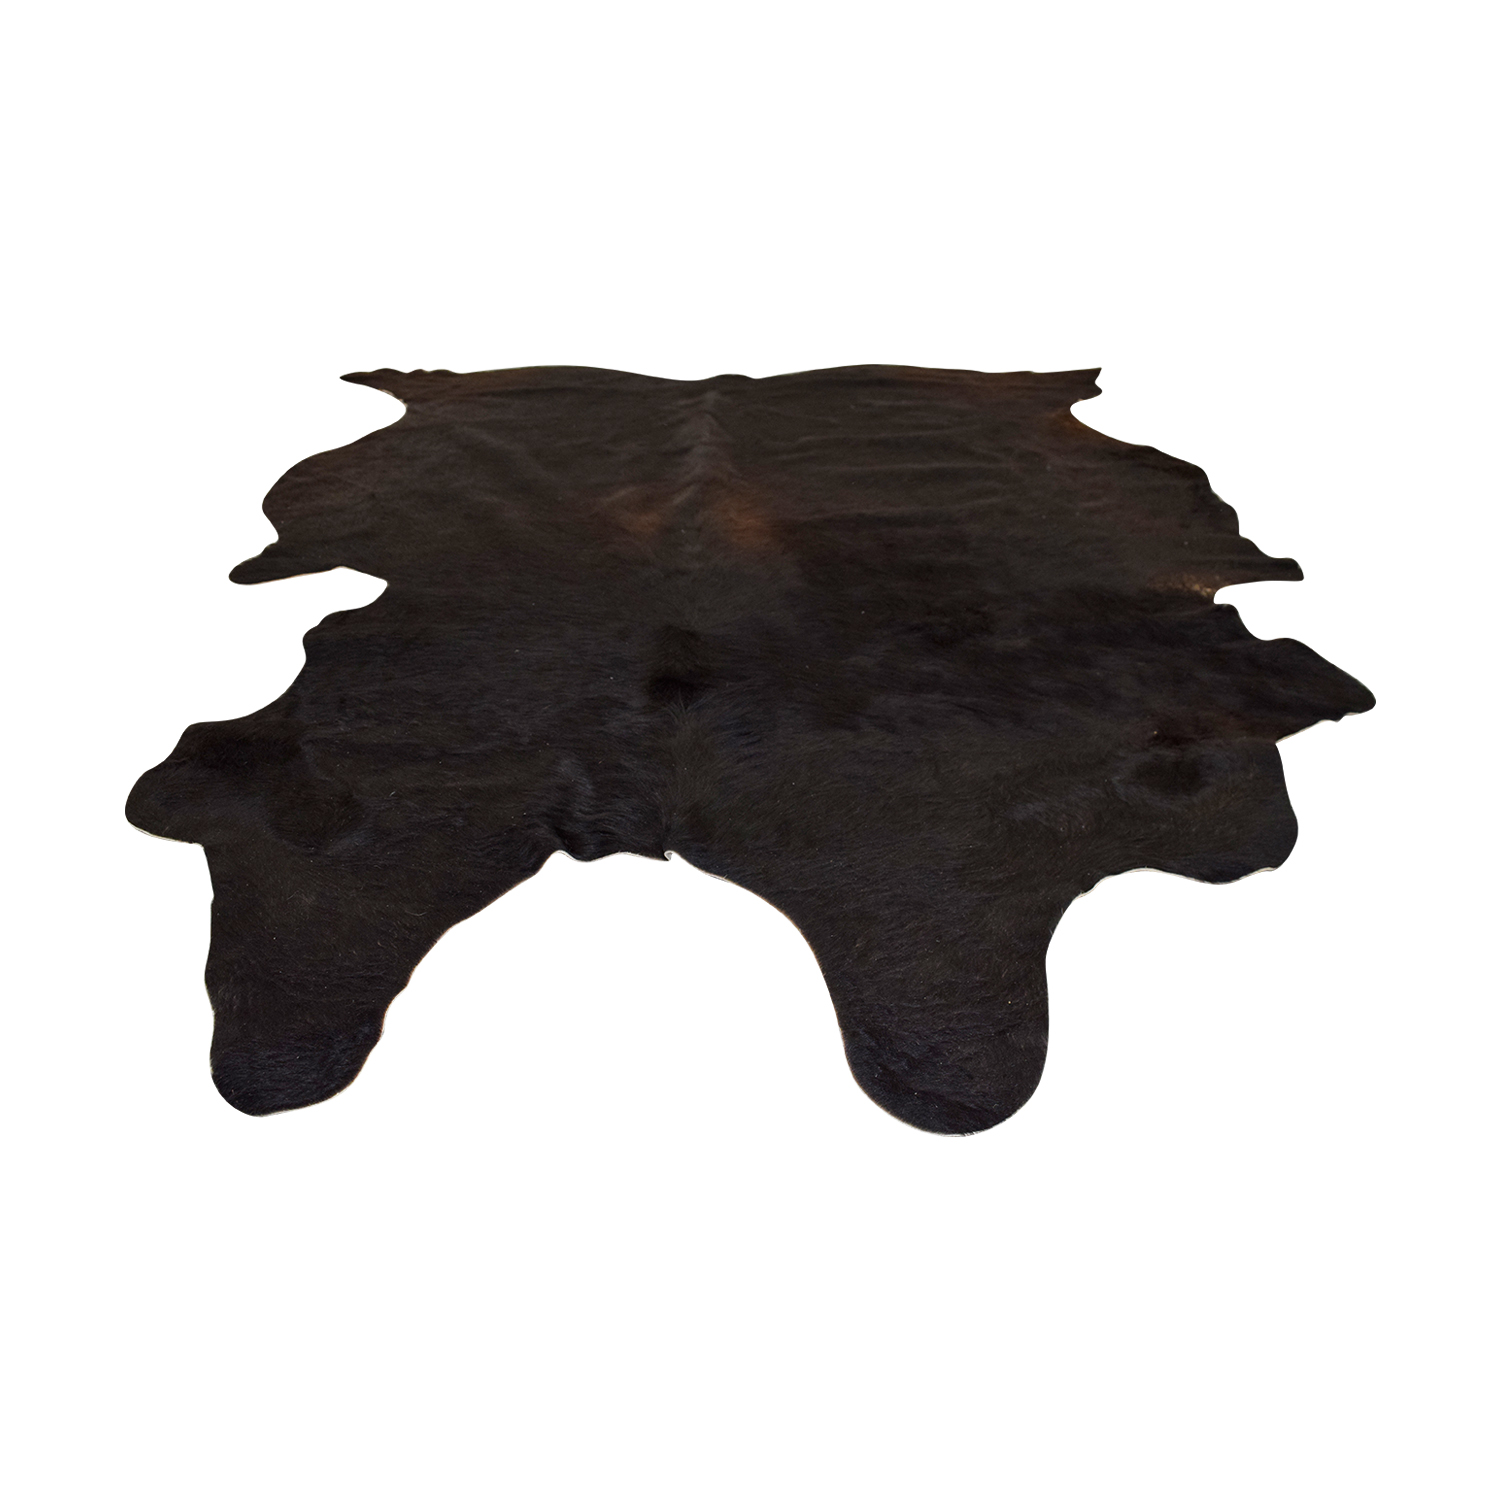 Ikea Cowhide Rug 68 Off Ikea Ikea Koldby Black Cowhide Rug Decor